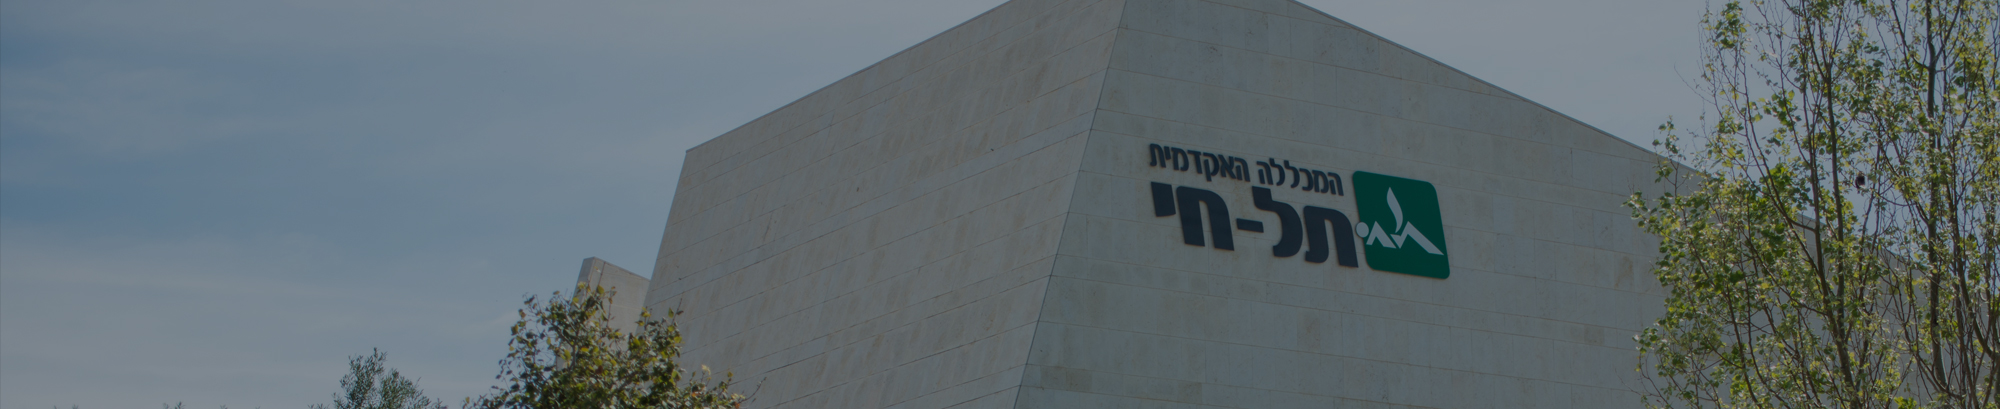 Building with Tel-Hai logo